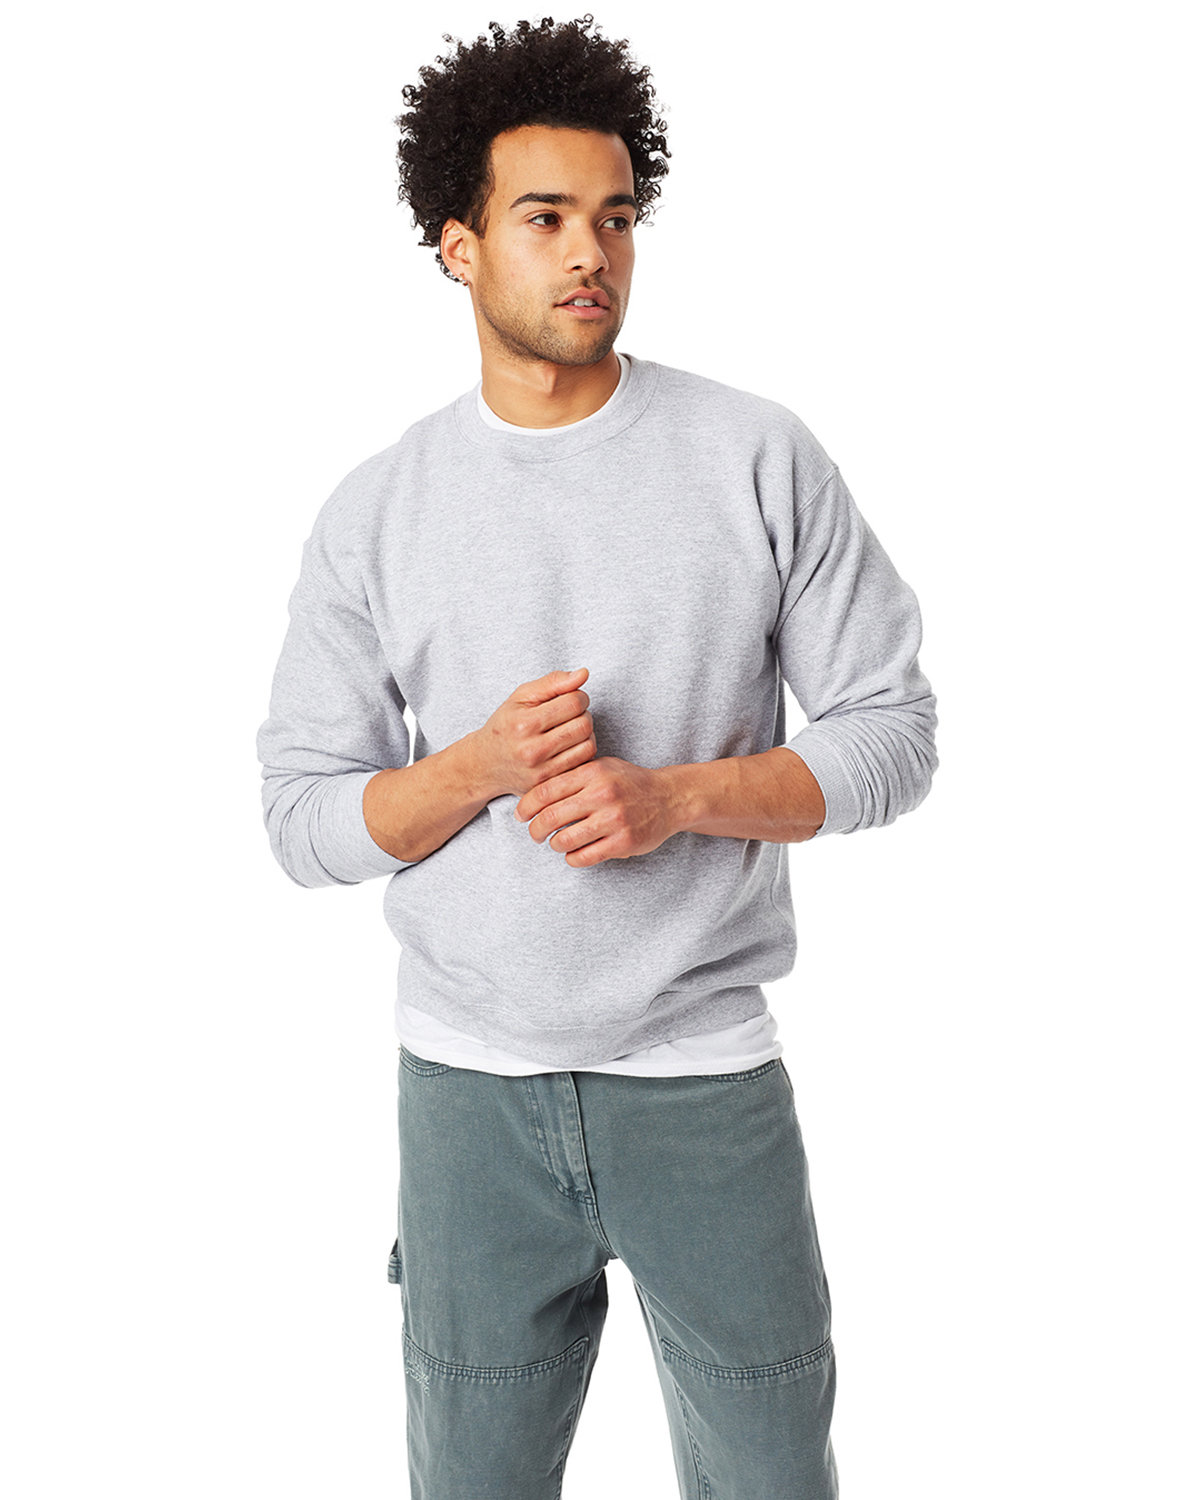 Hanes Unisex 7.8 oz., Ecosmart® 50/50 Crewneck Sweatshirt LIGHT STEEL